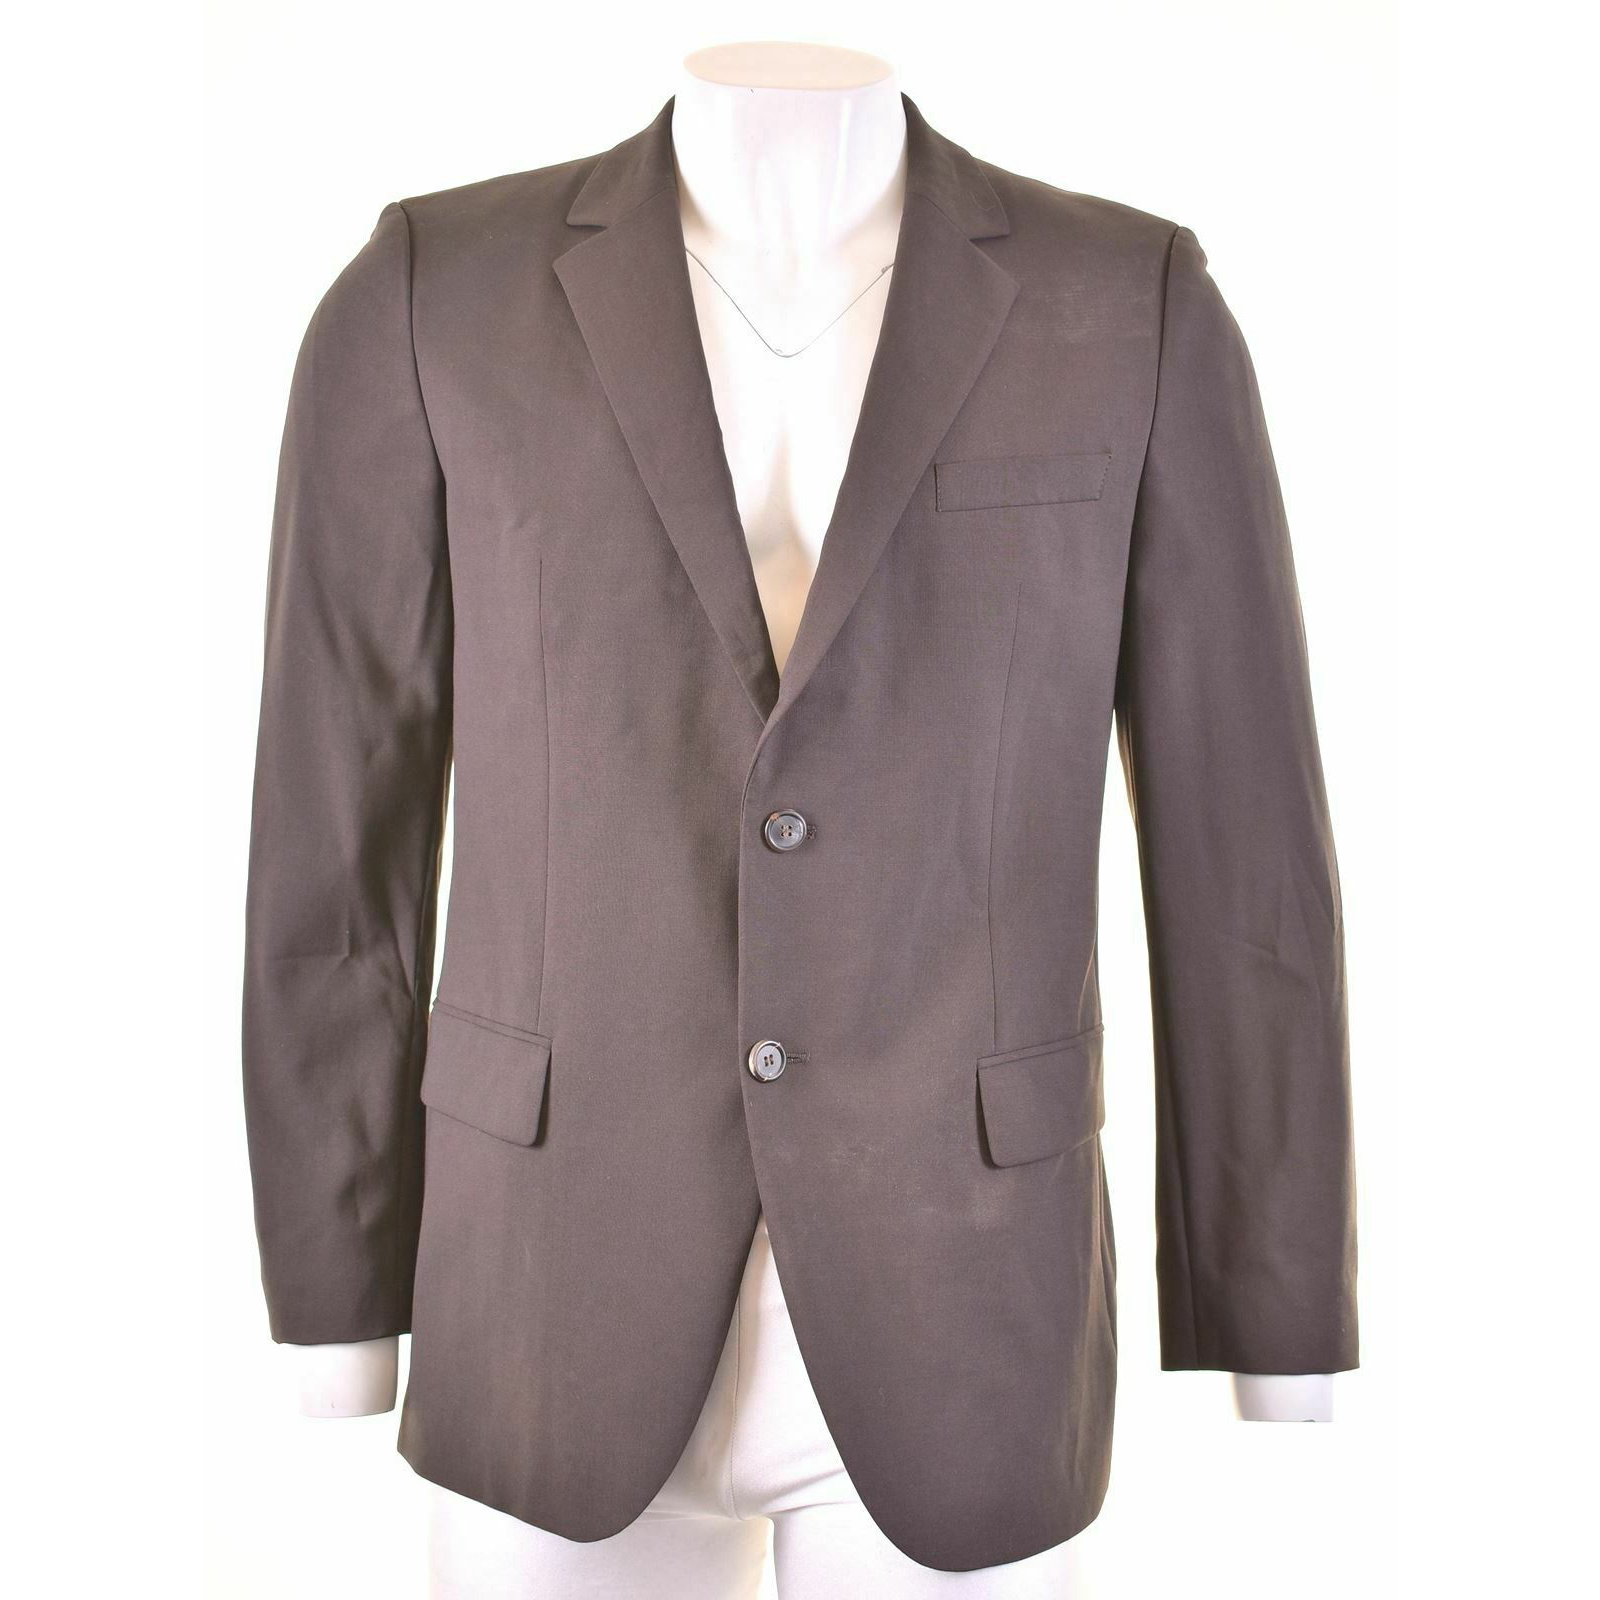 Product Image 1 - HUGO BOSS Mens 2 Button